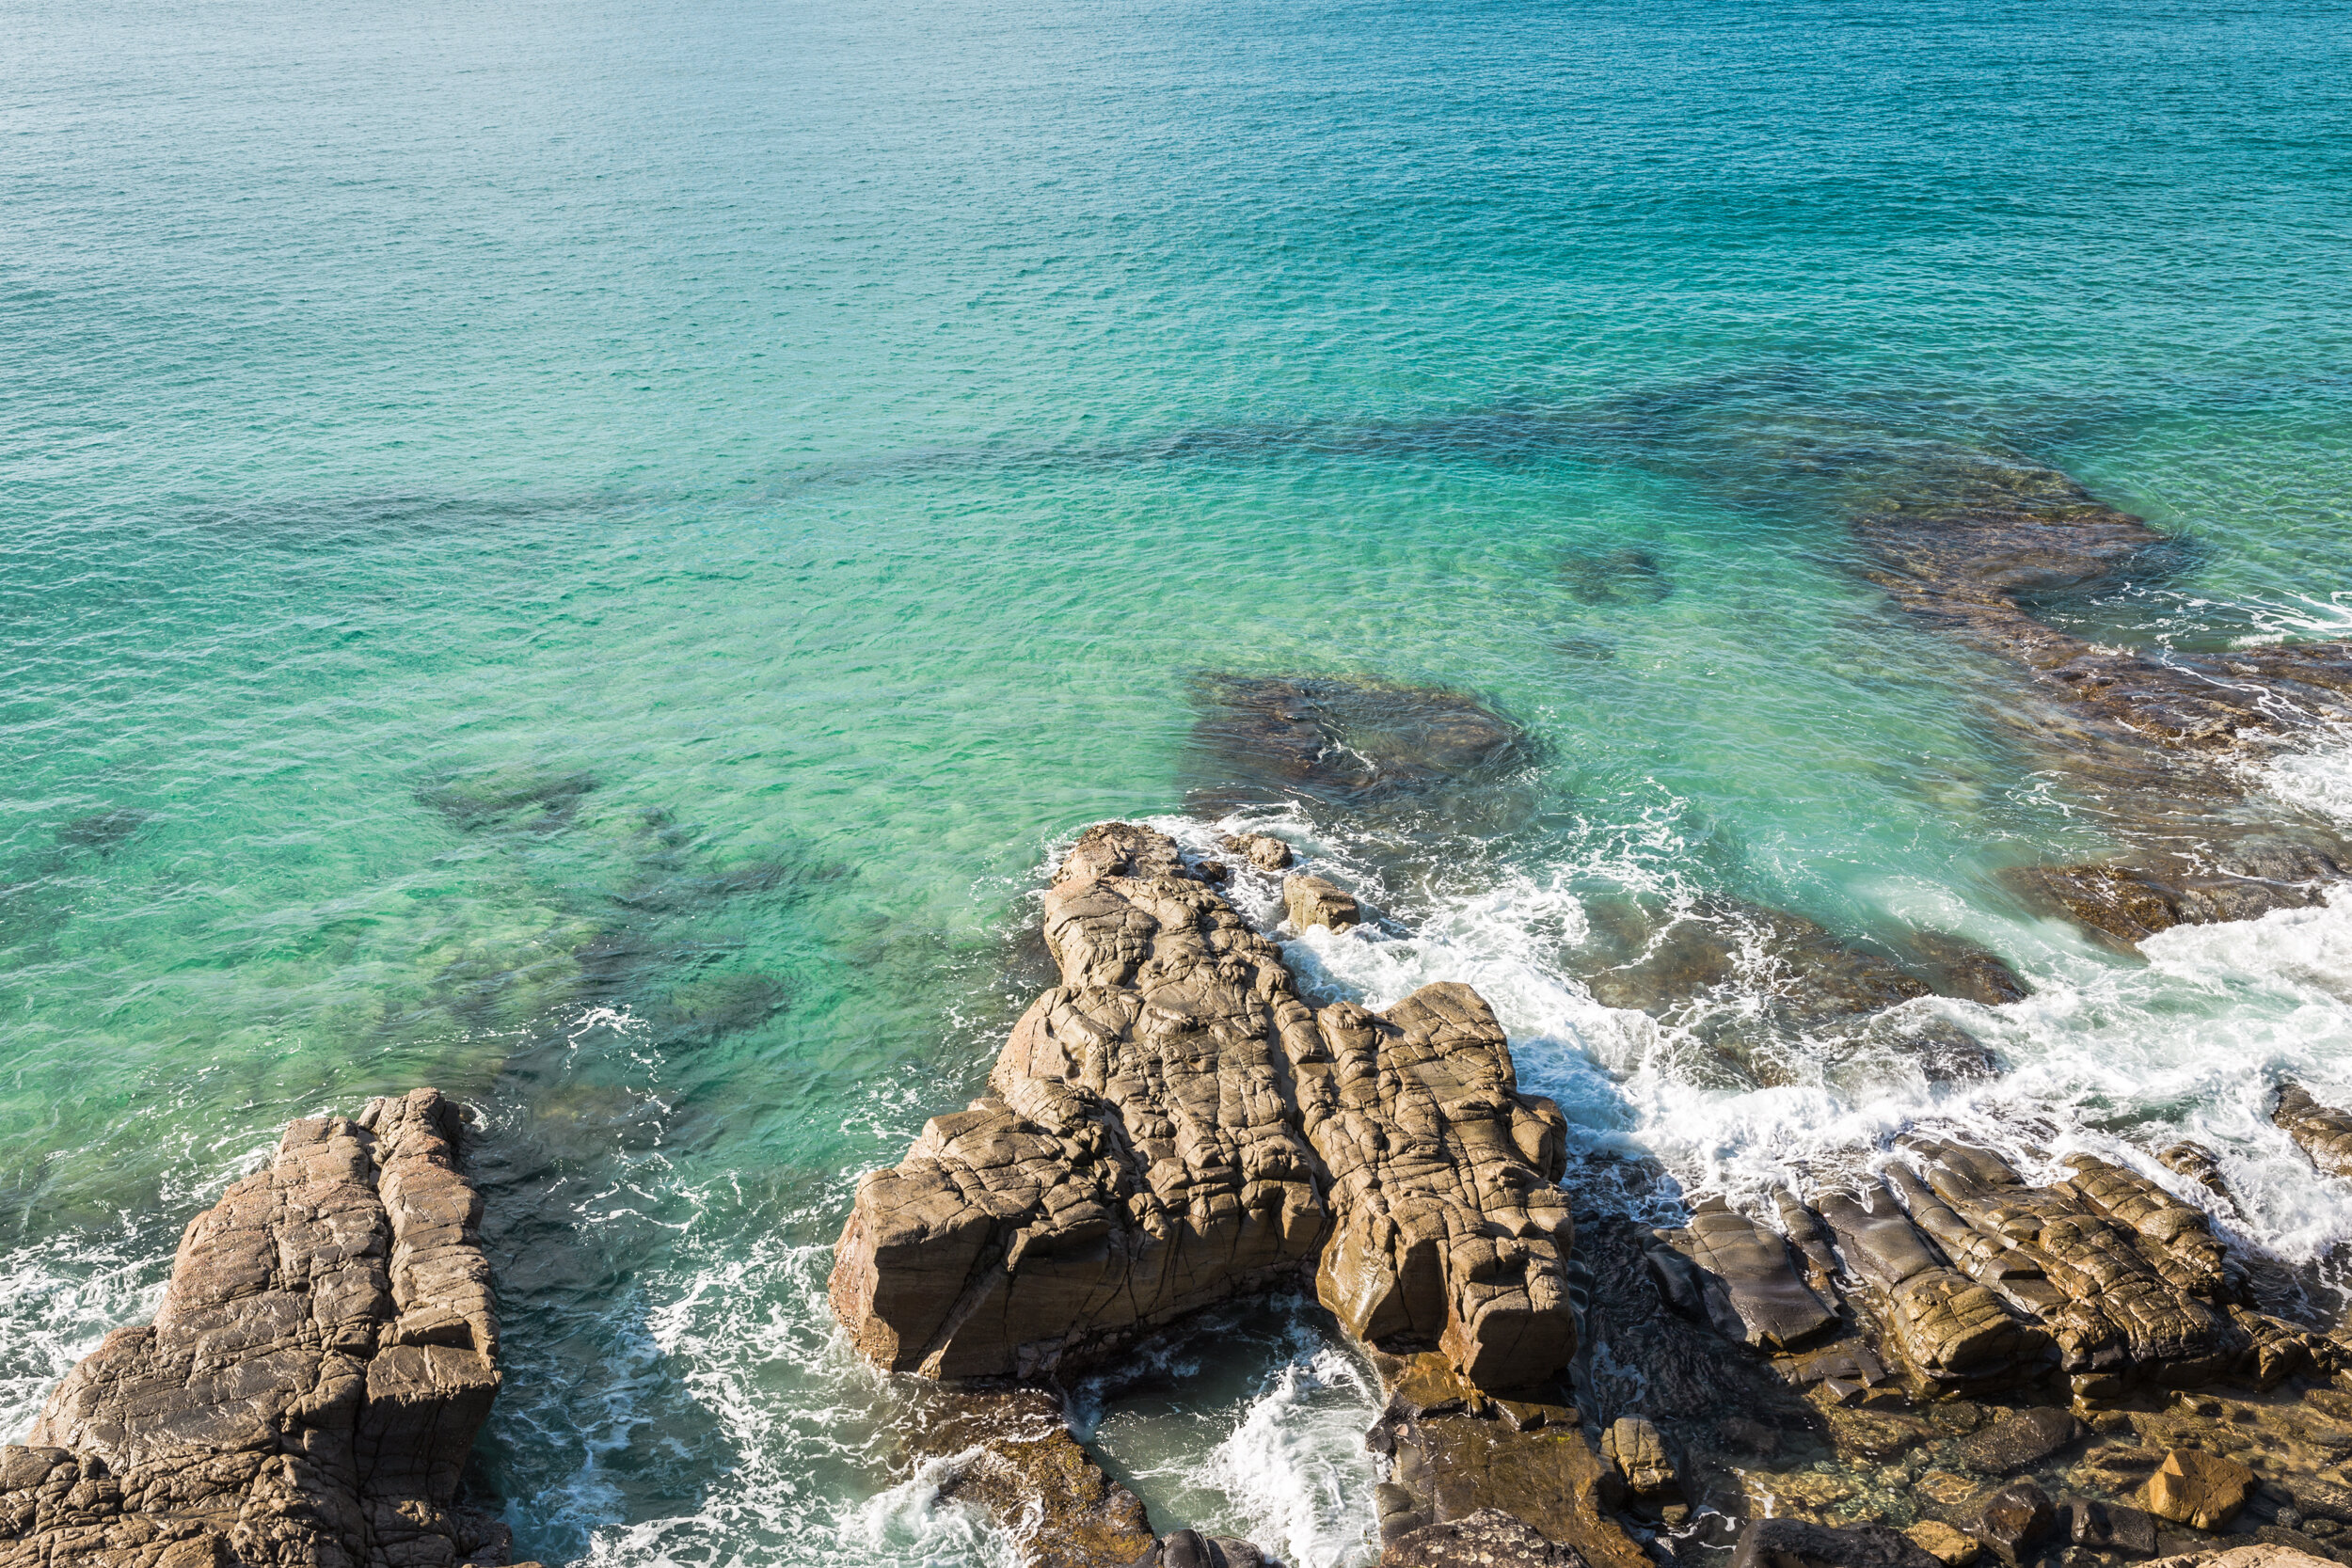 Colorful coastline at the Boiling Pot in Noosa National Park.